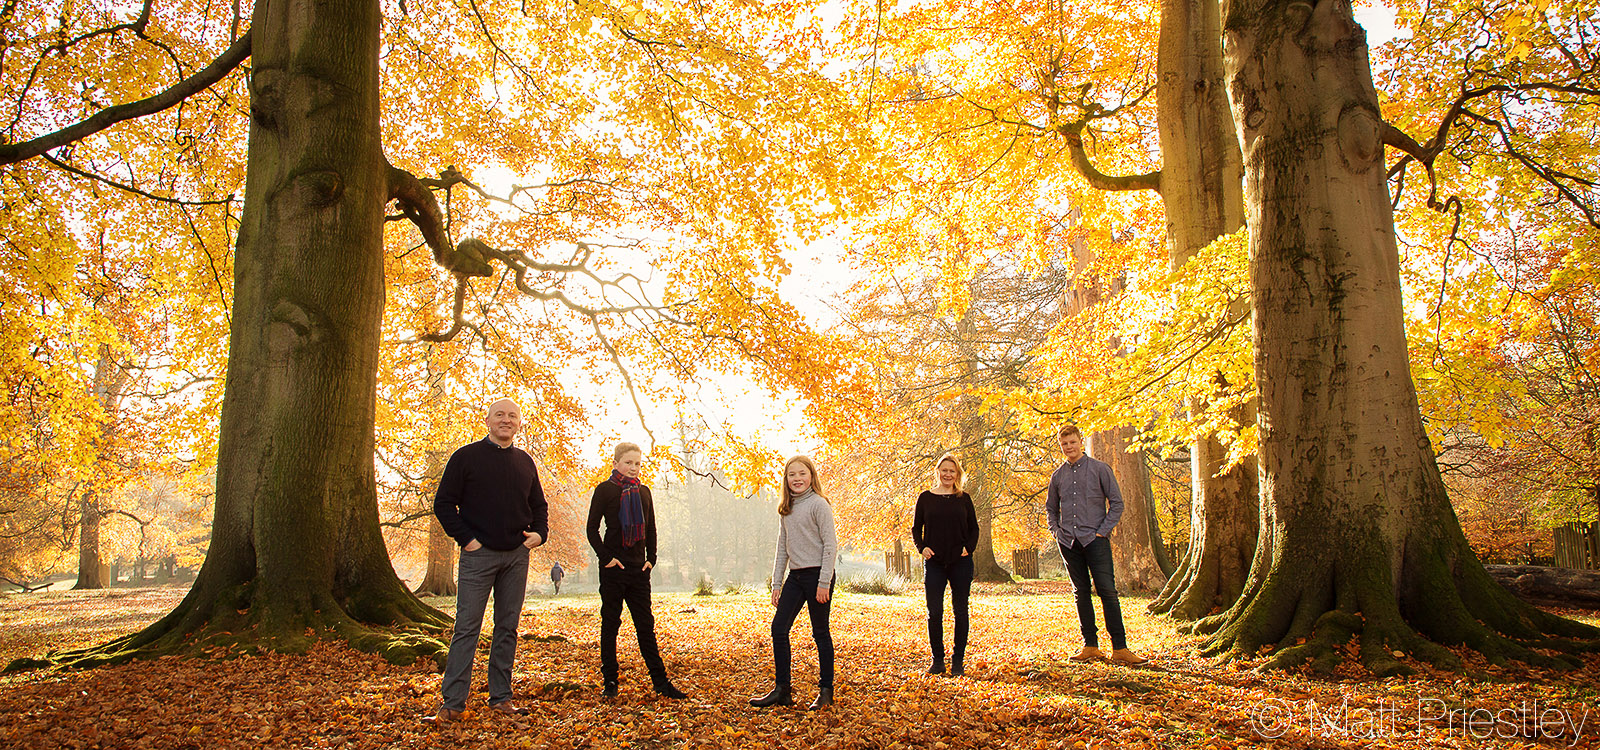 Family-portrait-photography-nr-Altrincham-by-local-photographer-Matt-Priiestley-9